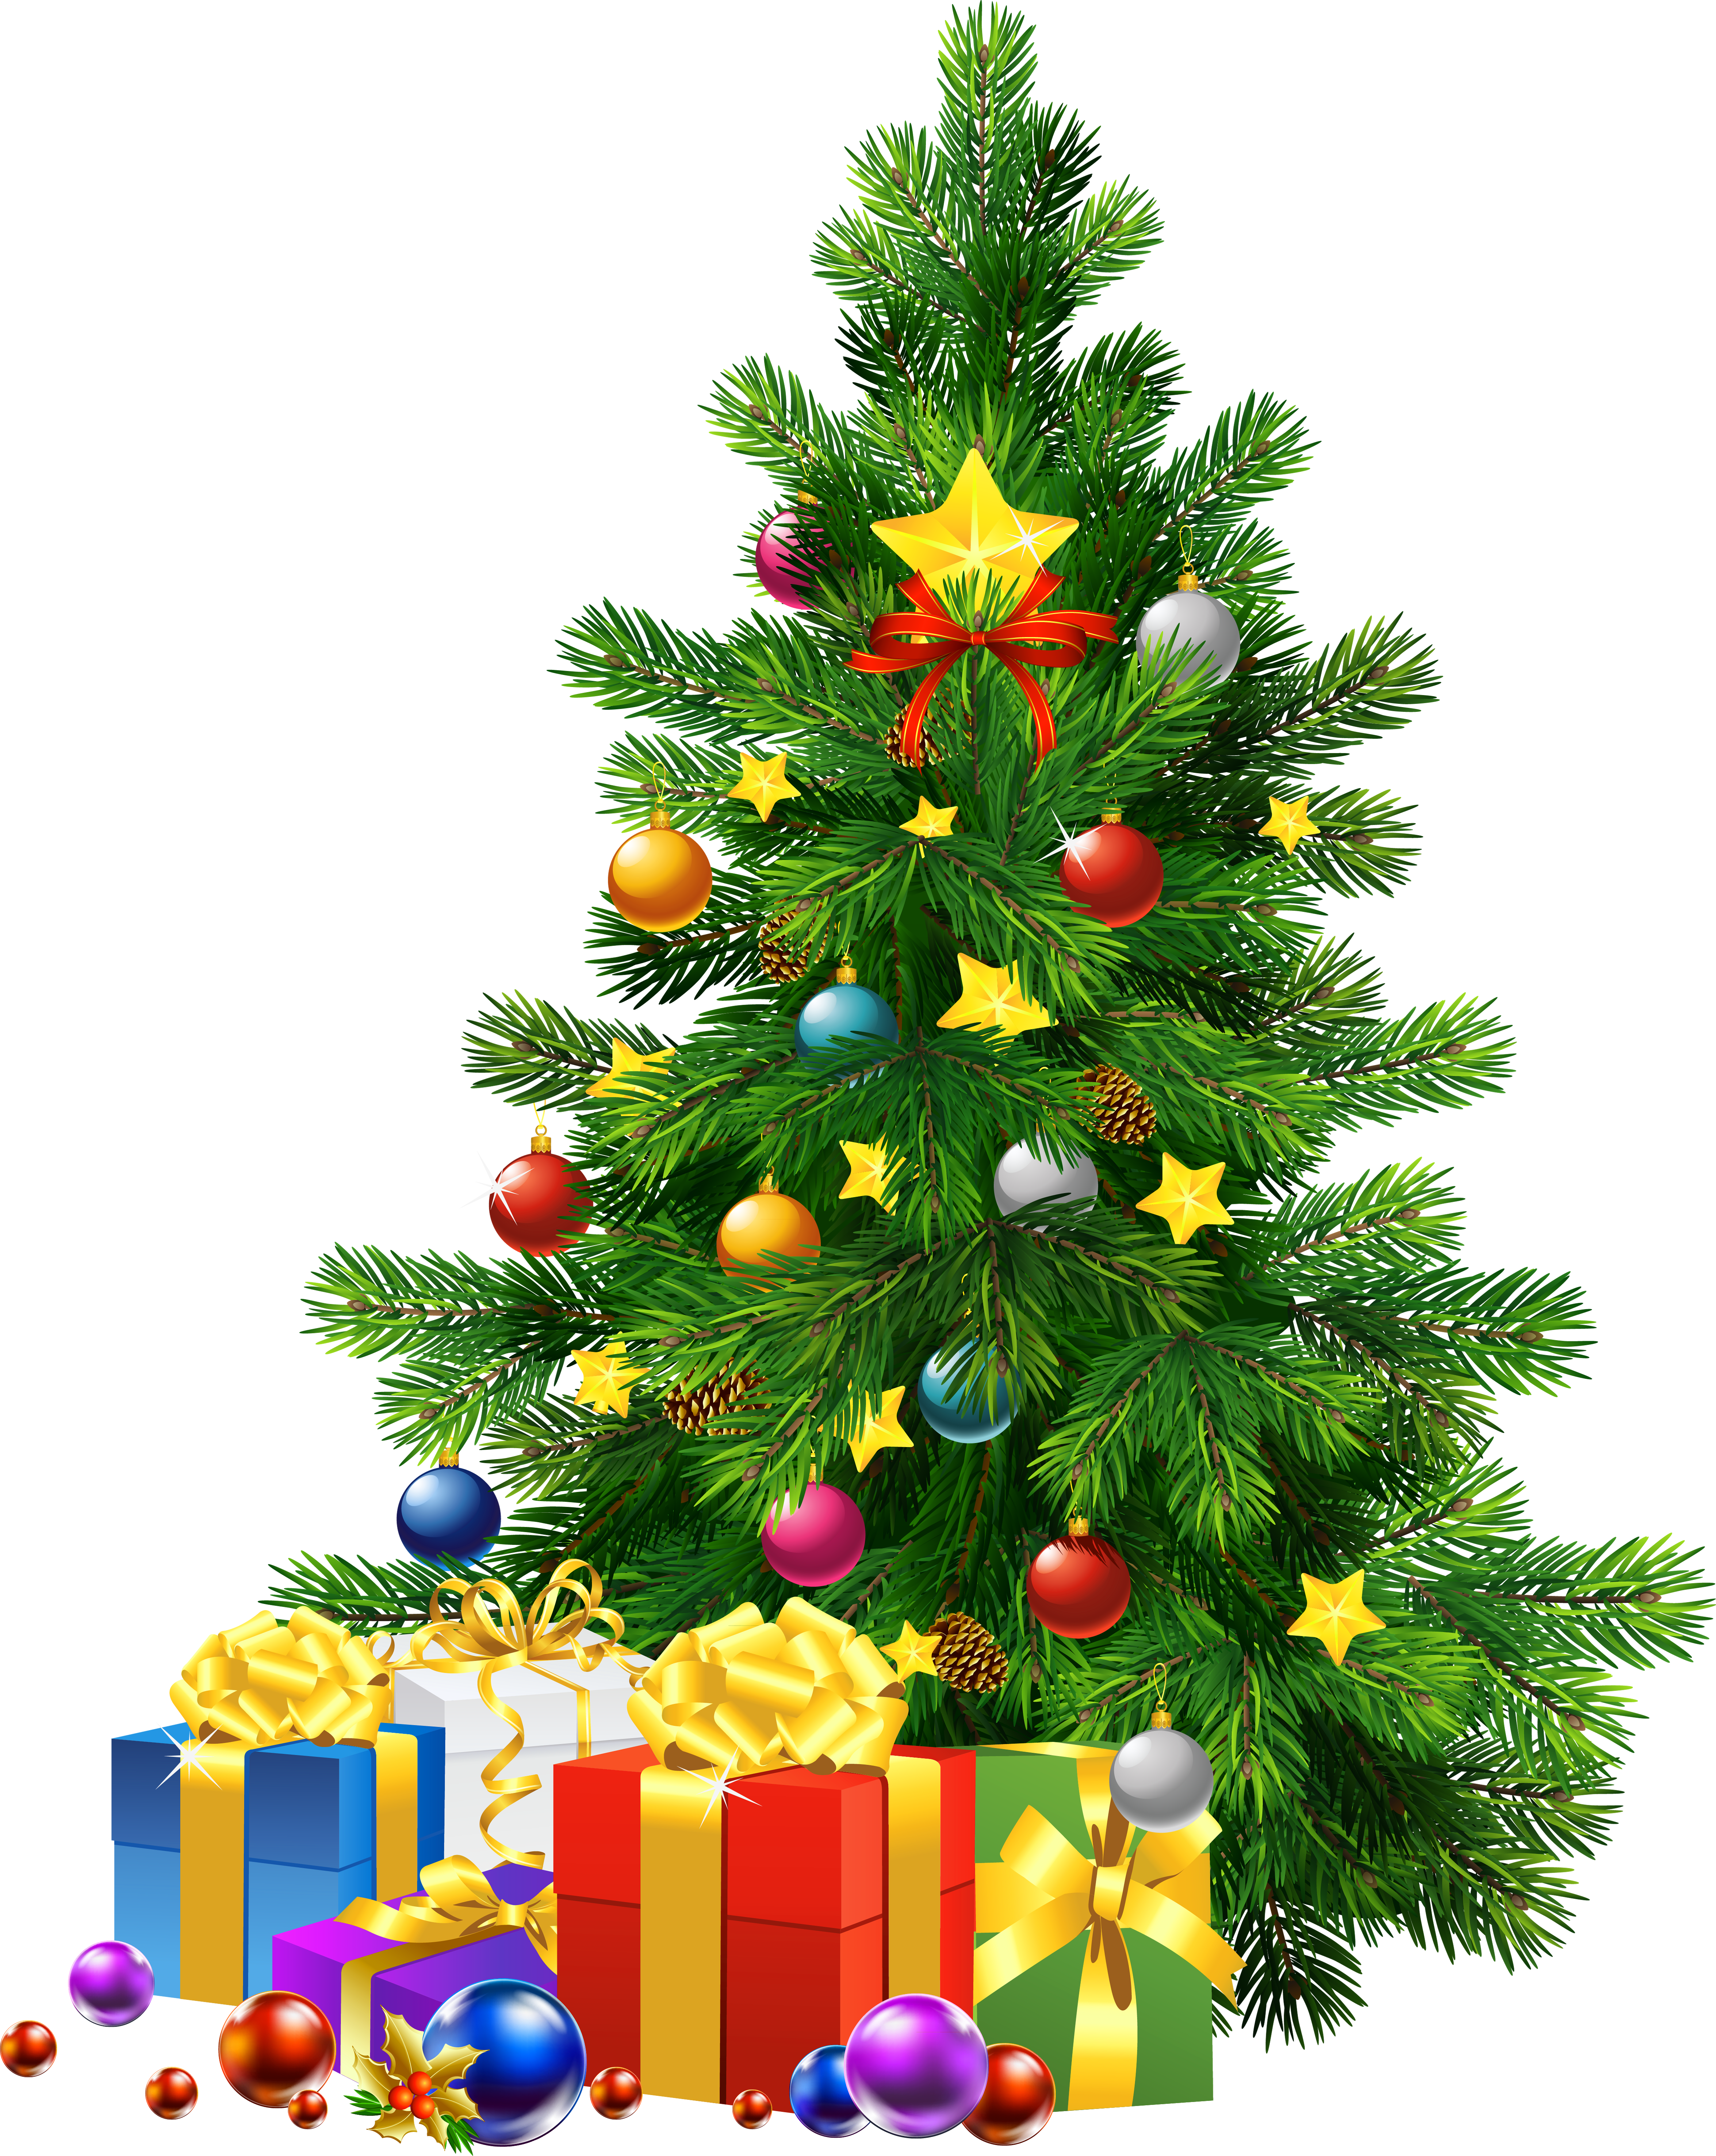 December clipart christmas tree. Large transparent png with